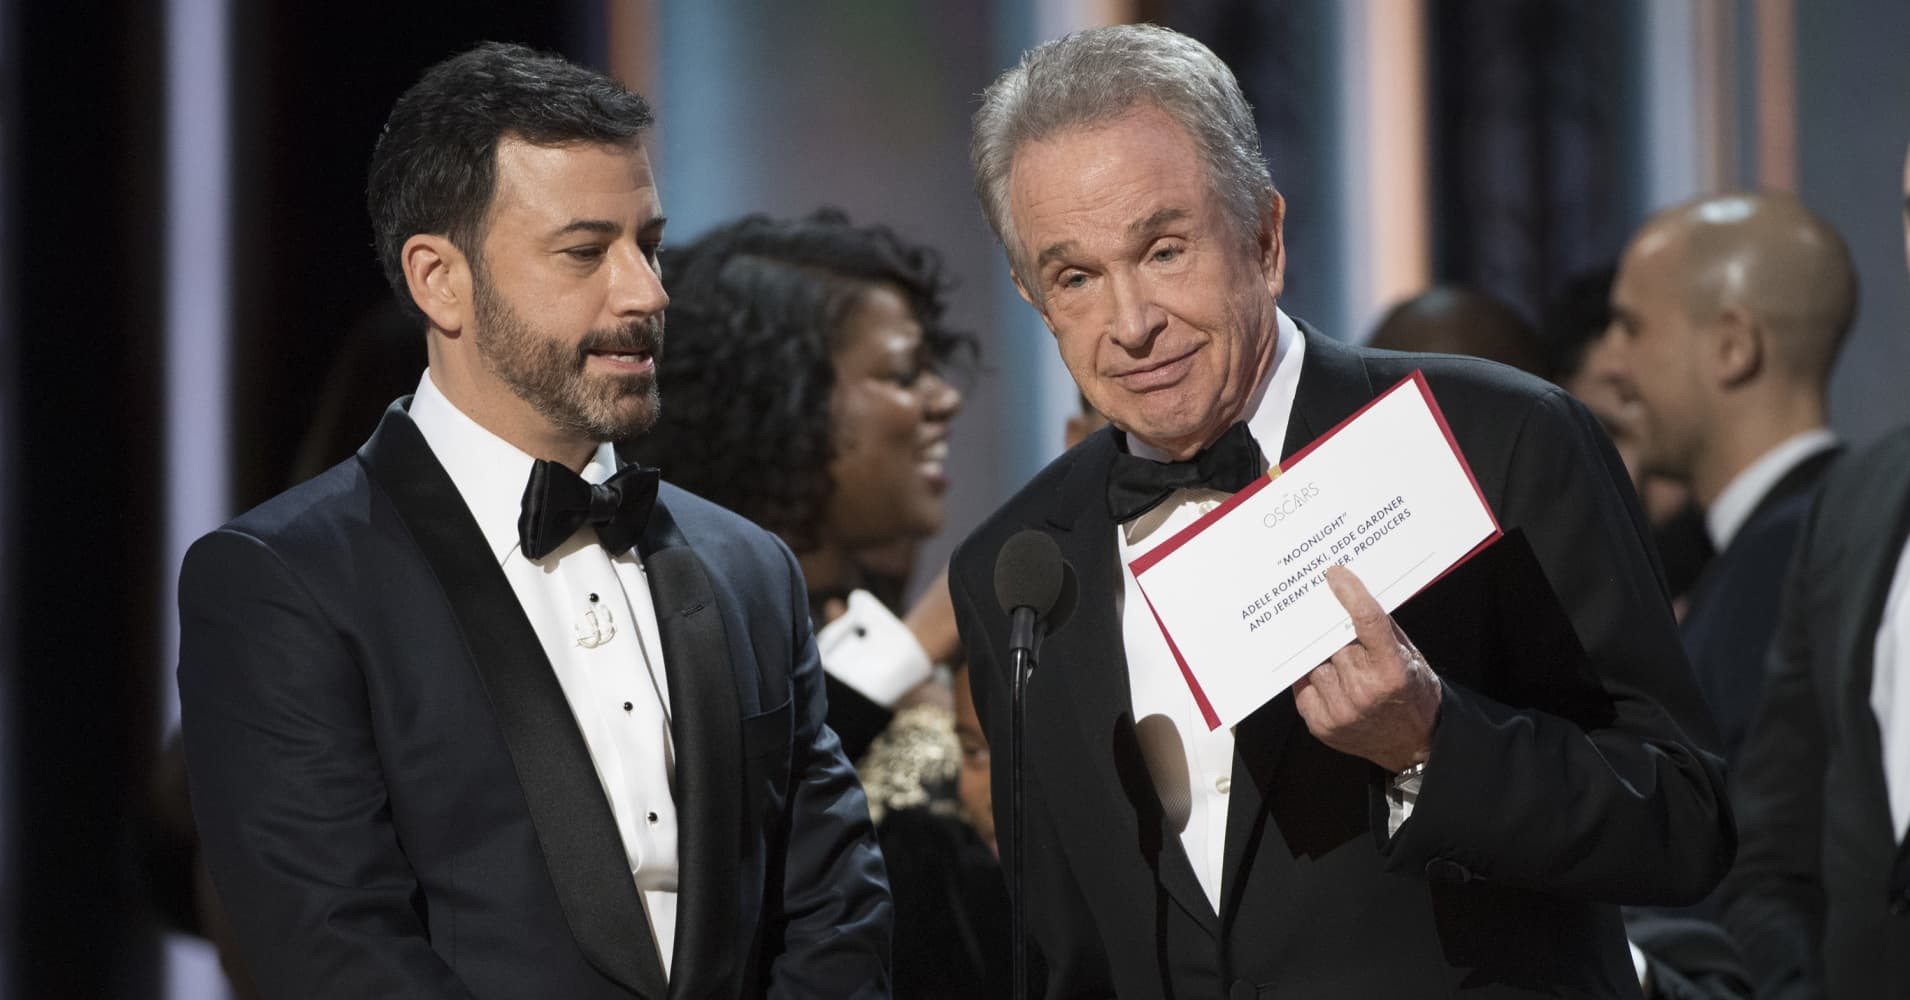 A tweet may be to blame for the biggest Oscar goof up in history